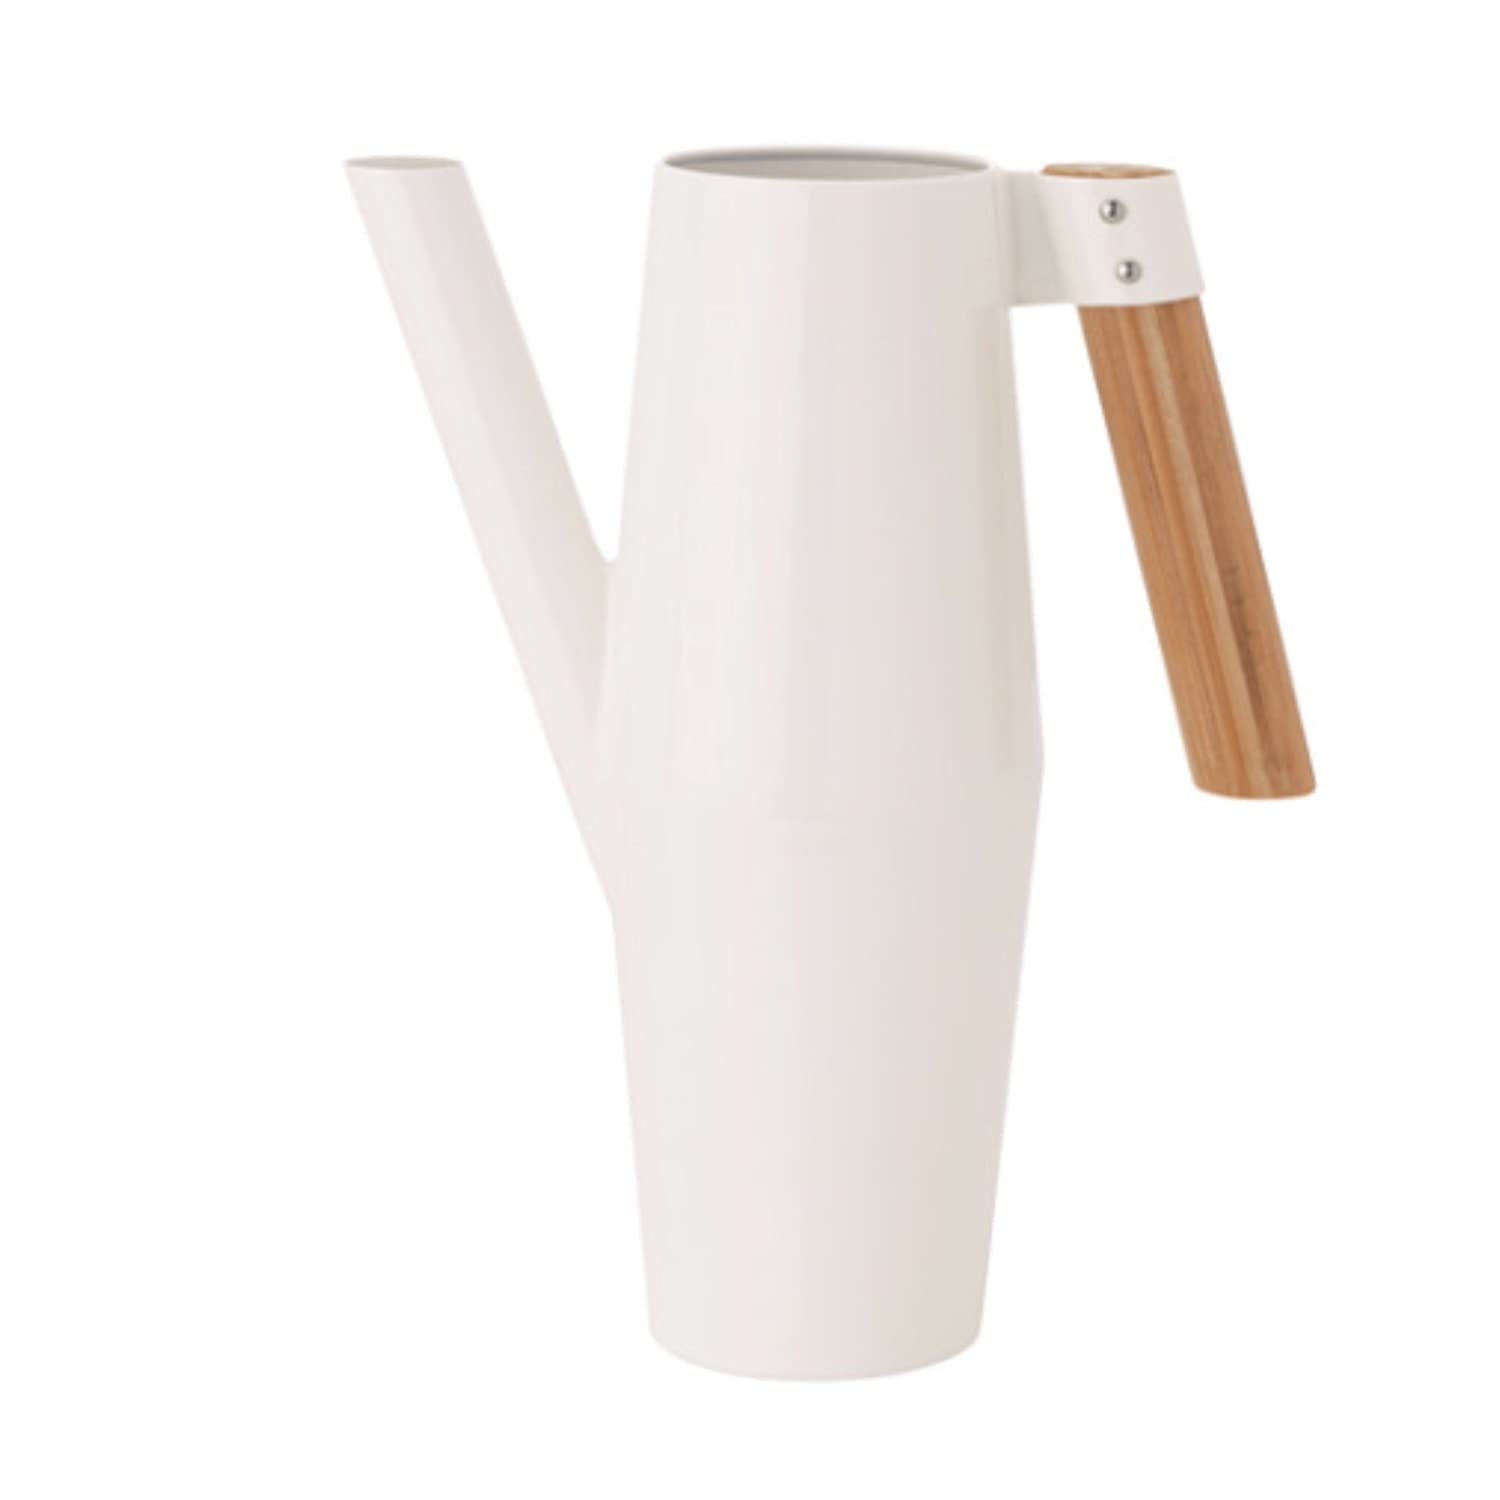 IKEA Contemporary Watering Can Bamboo Handle Bittergurka 303.680.68, White